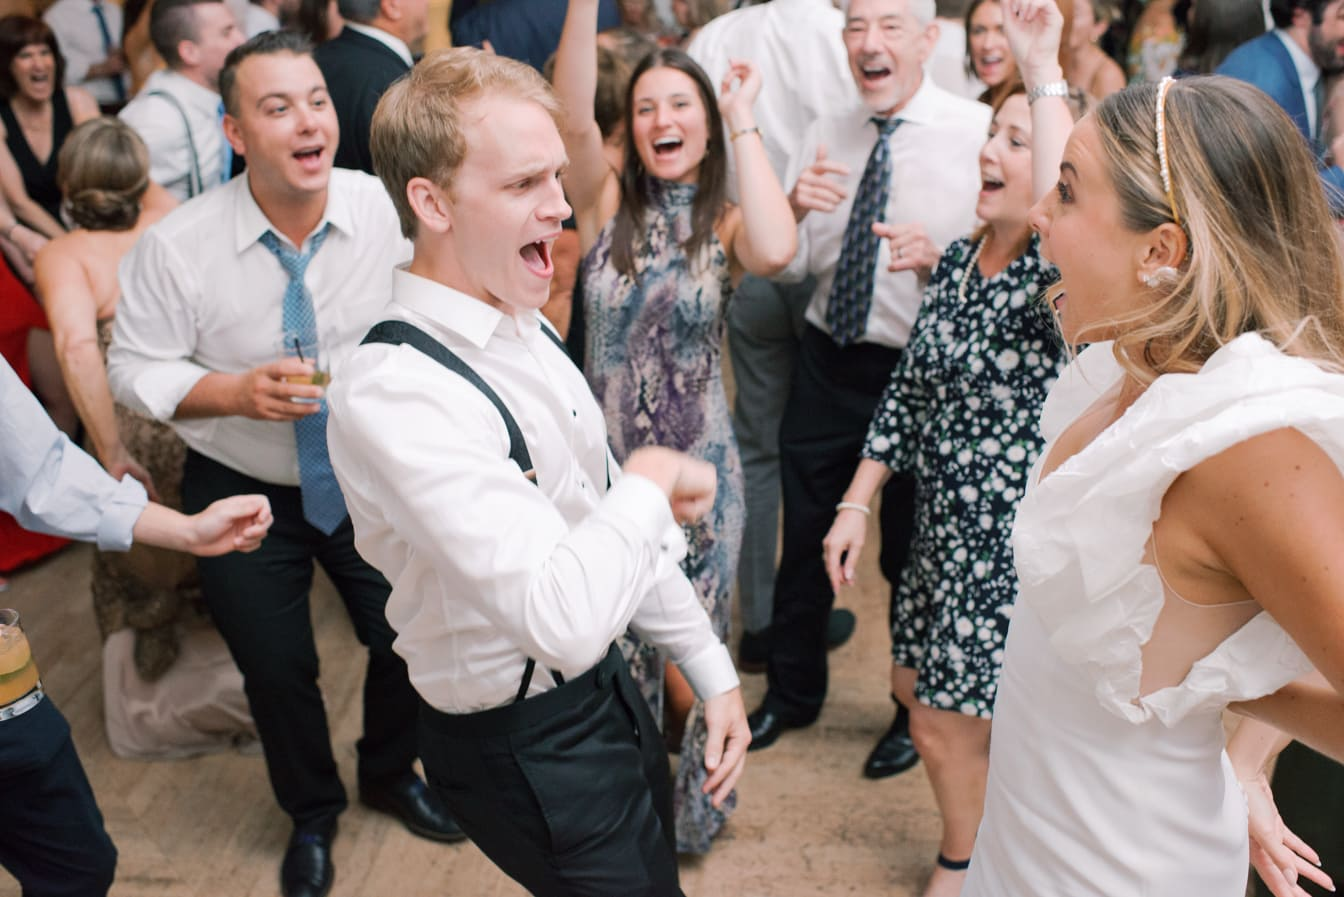 Bride and groom dancing with wedding guests at Chicago Illuminating Company